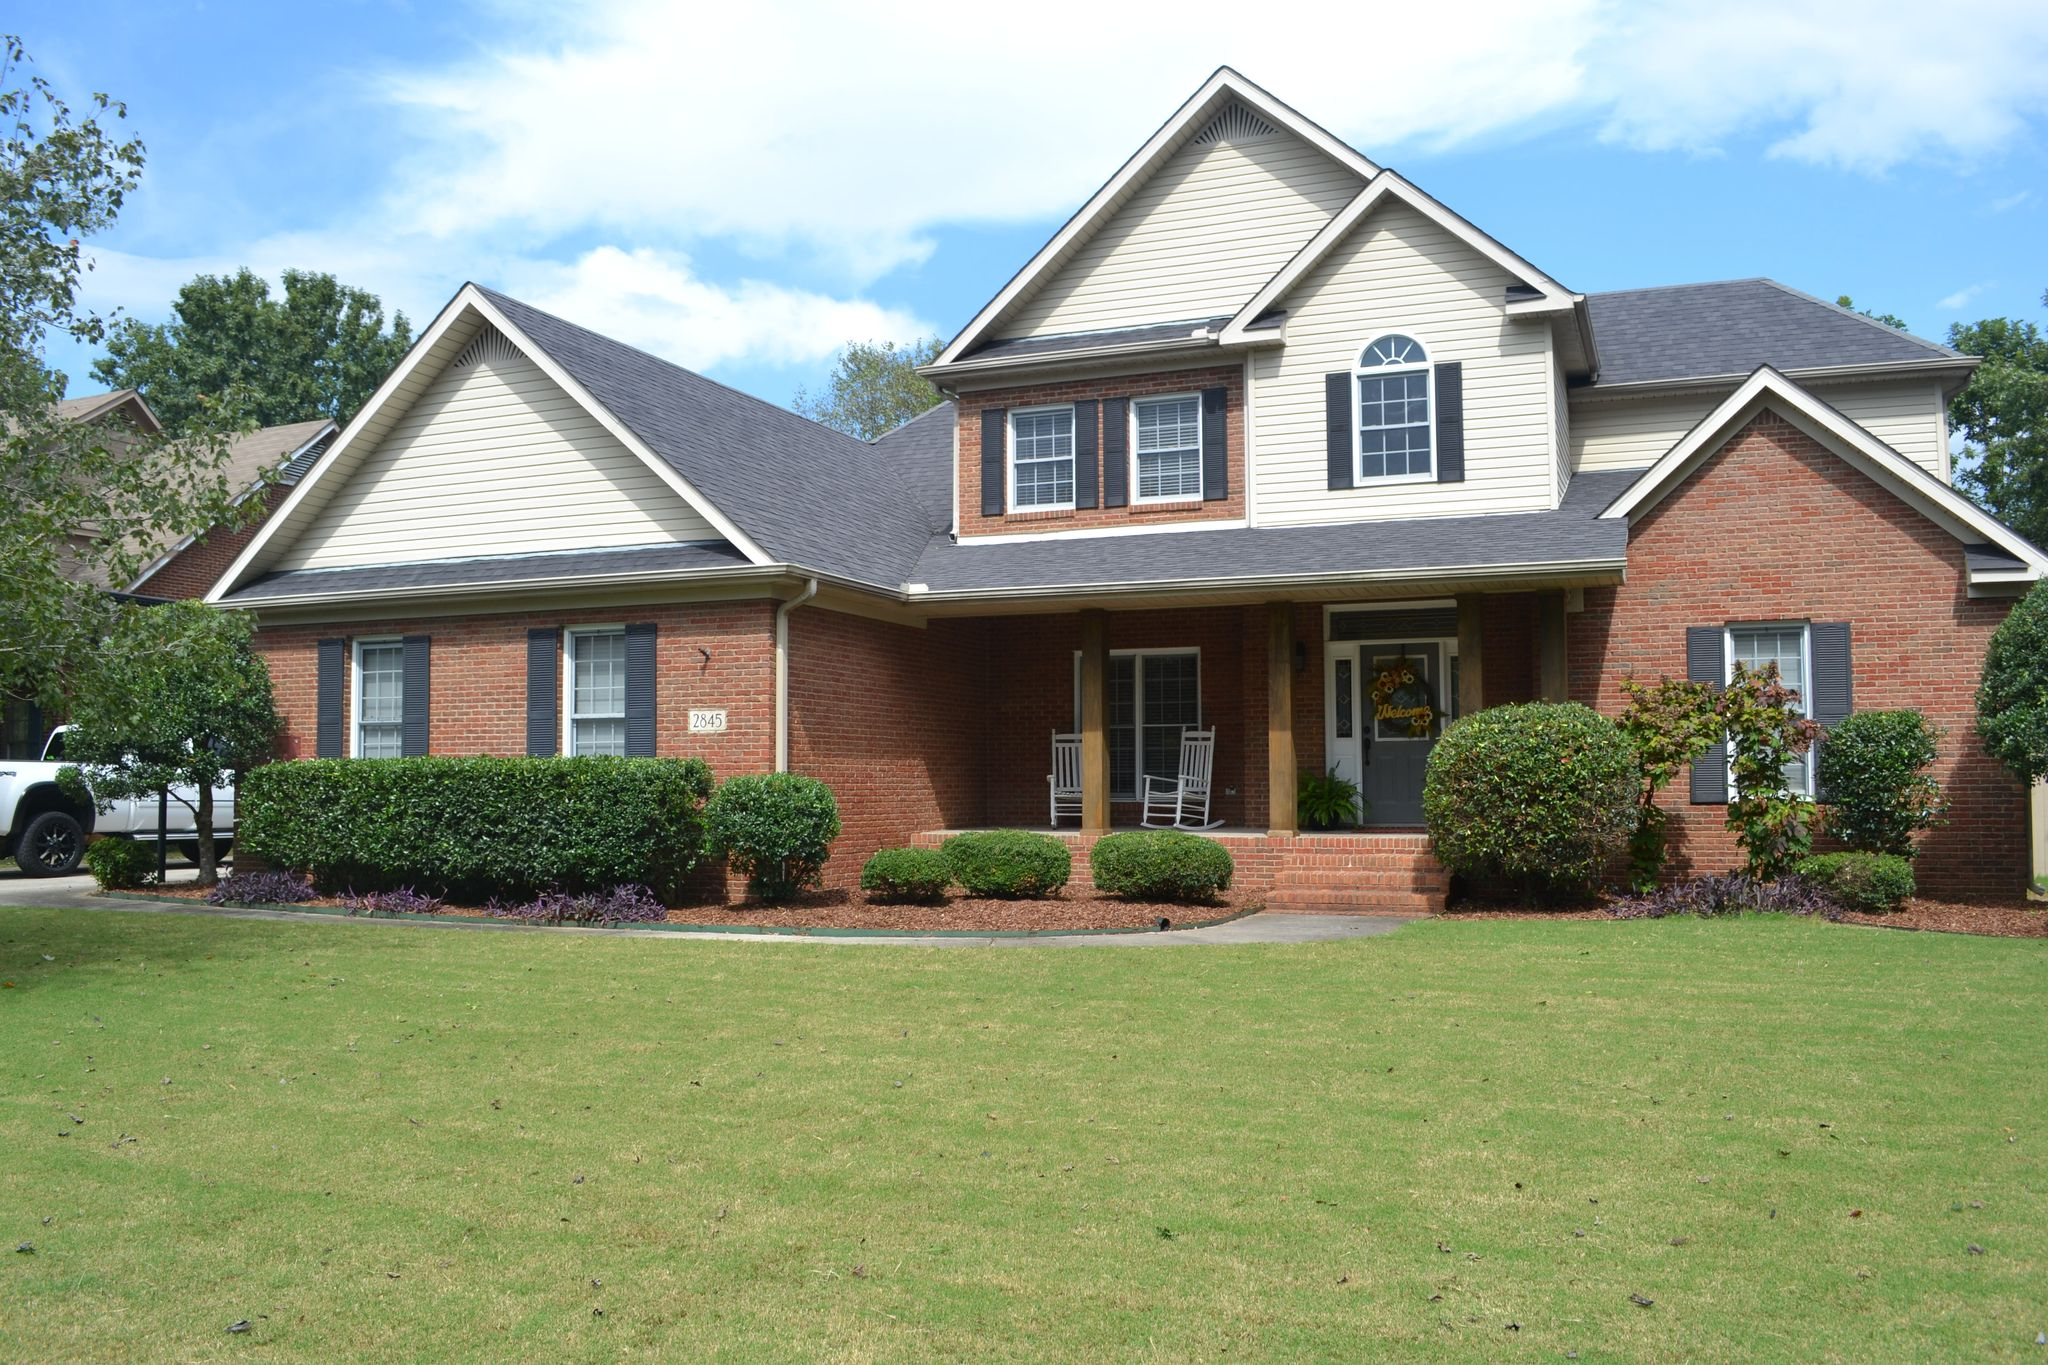 Here is the Brand New Picture Of Patio Homes for Sale Hampton Cove Al